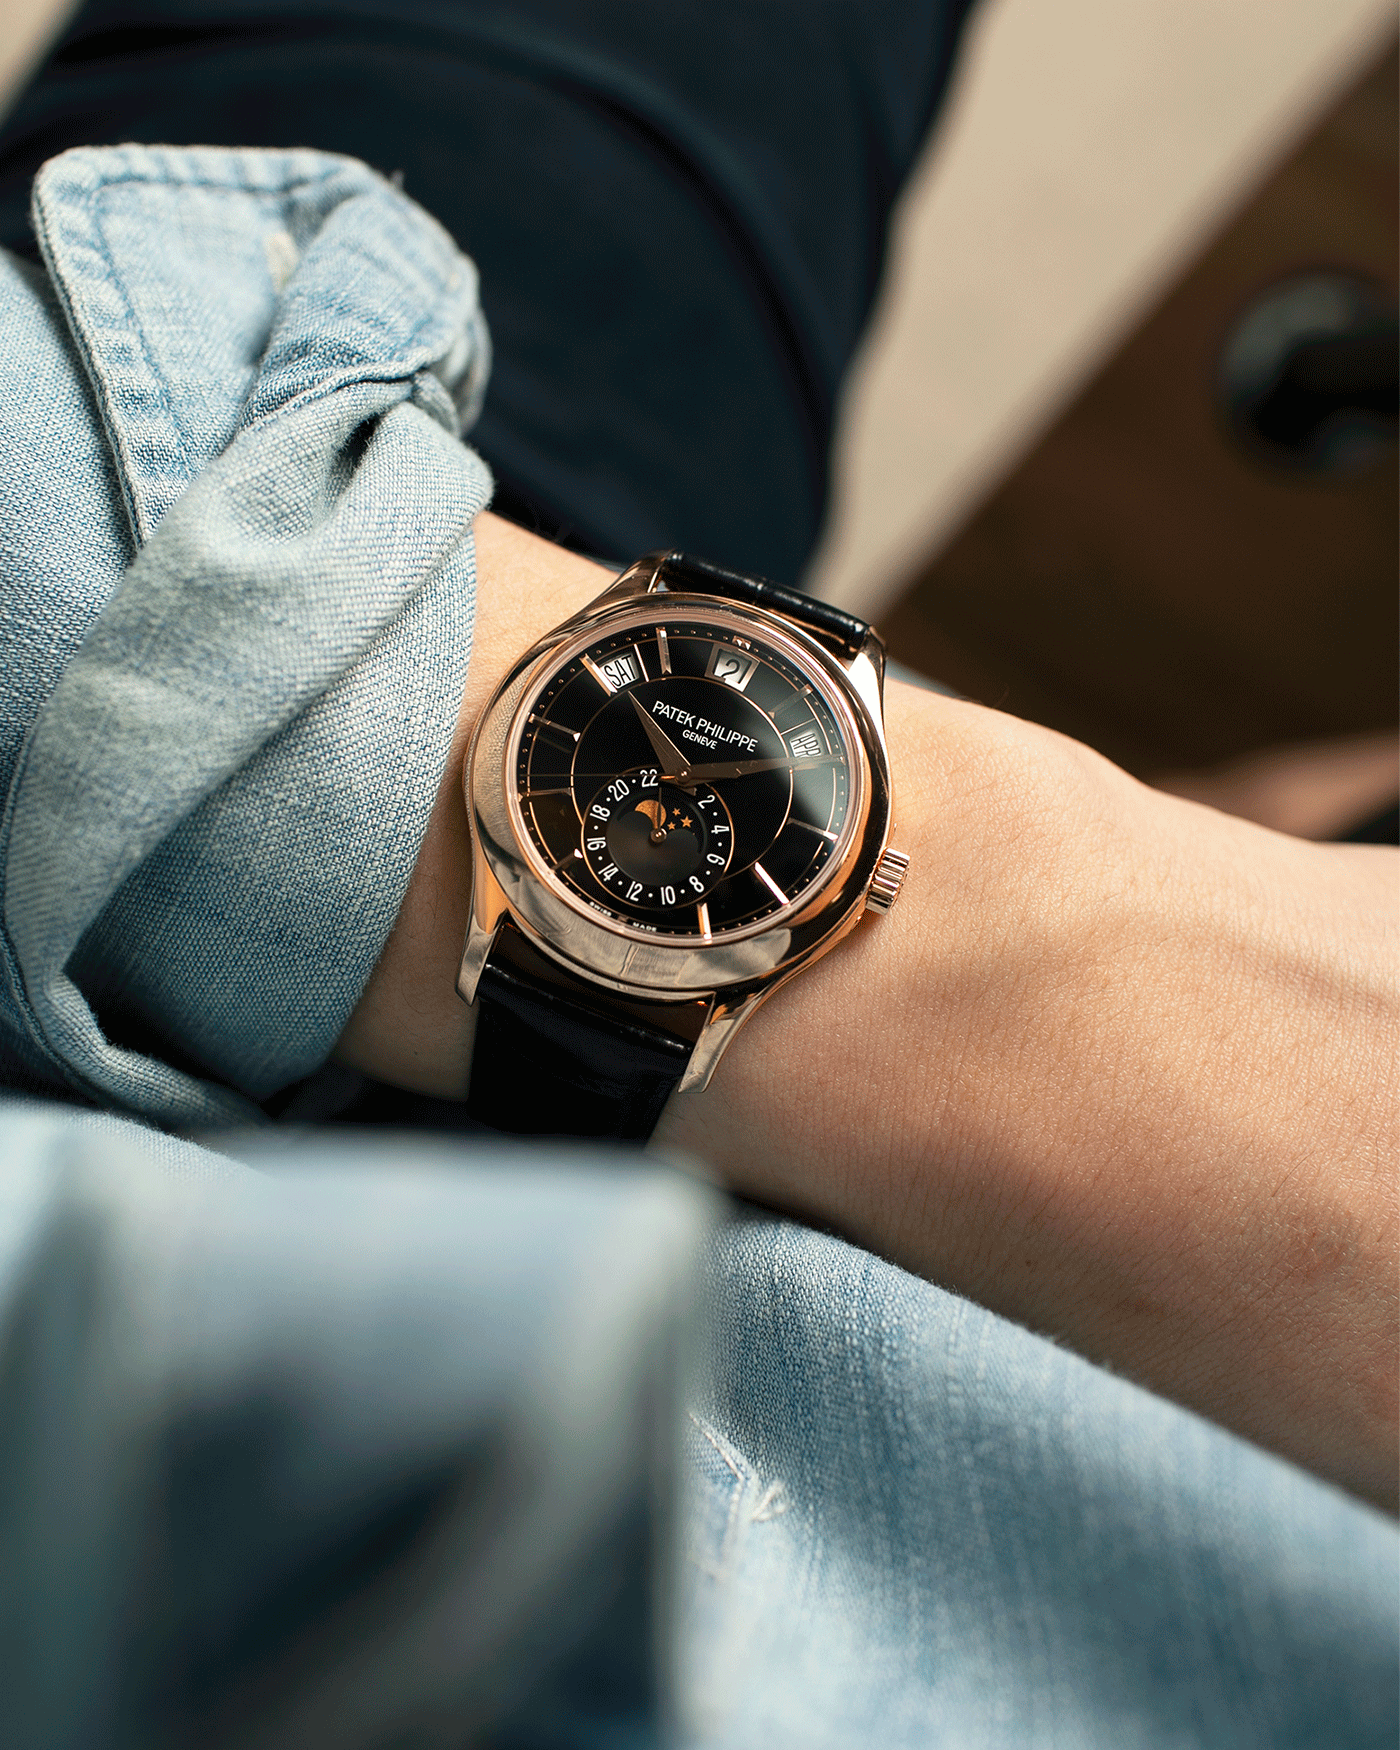 Brand: Patek Philippe Year: 2019 Model: Annual Calendar Reference Number: 5205R Material: 18k Rose Gold Movement: Cal 324 S QA LU 24H Case Diameter: 40mm Bracelet: Nostime Patek Philippe Black Alligator Strap with 18k Rose Gold Tang Buckle